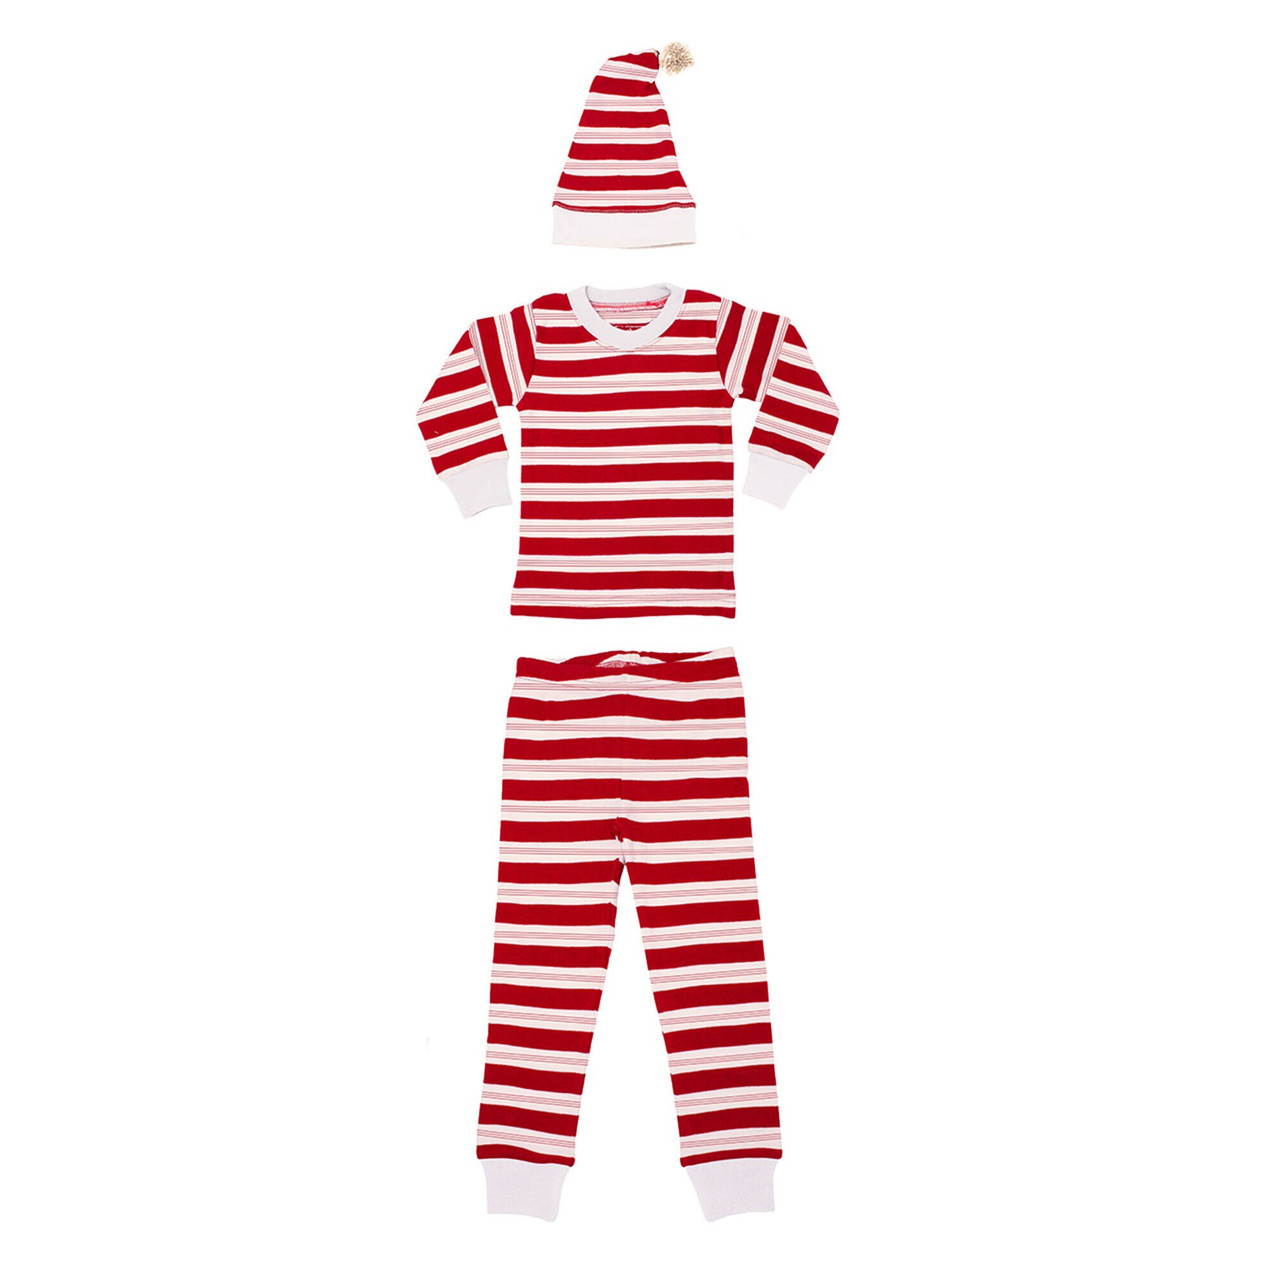 Organic Kids' L/Sleeve PJ & Cap Set in Peppermint Stripe, Flat